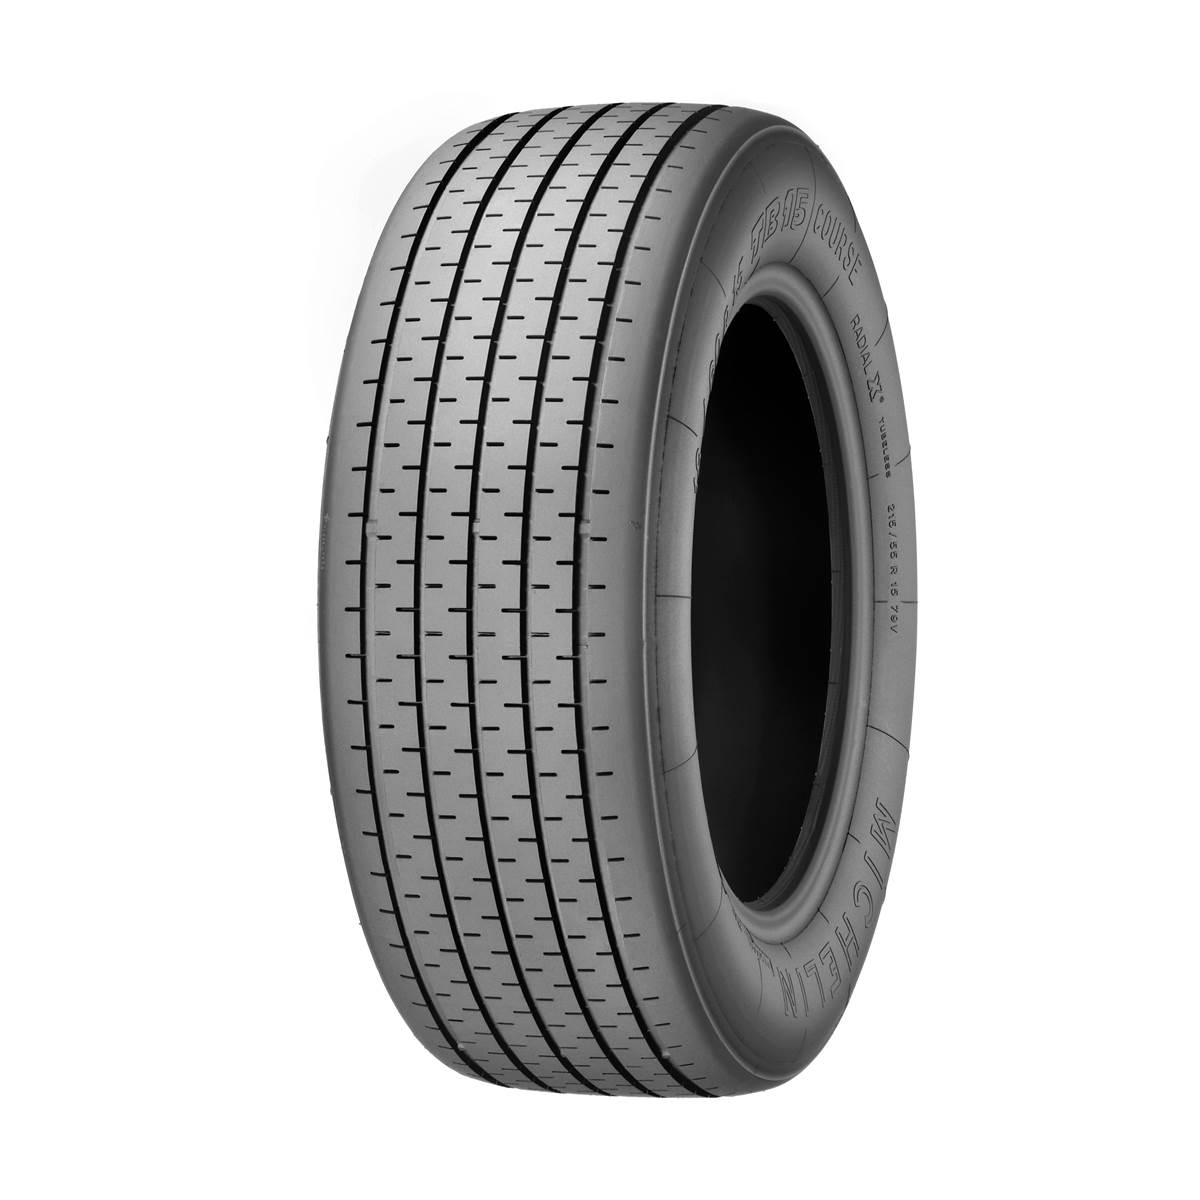 Pneu Michelin Collection 270/45R15 86V Tb15